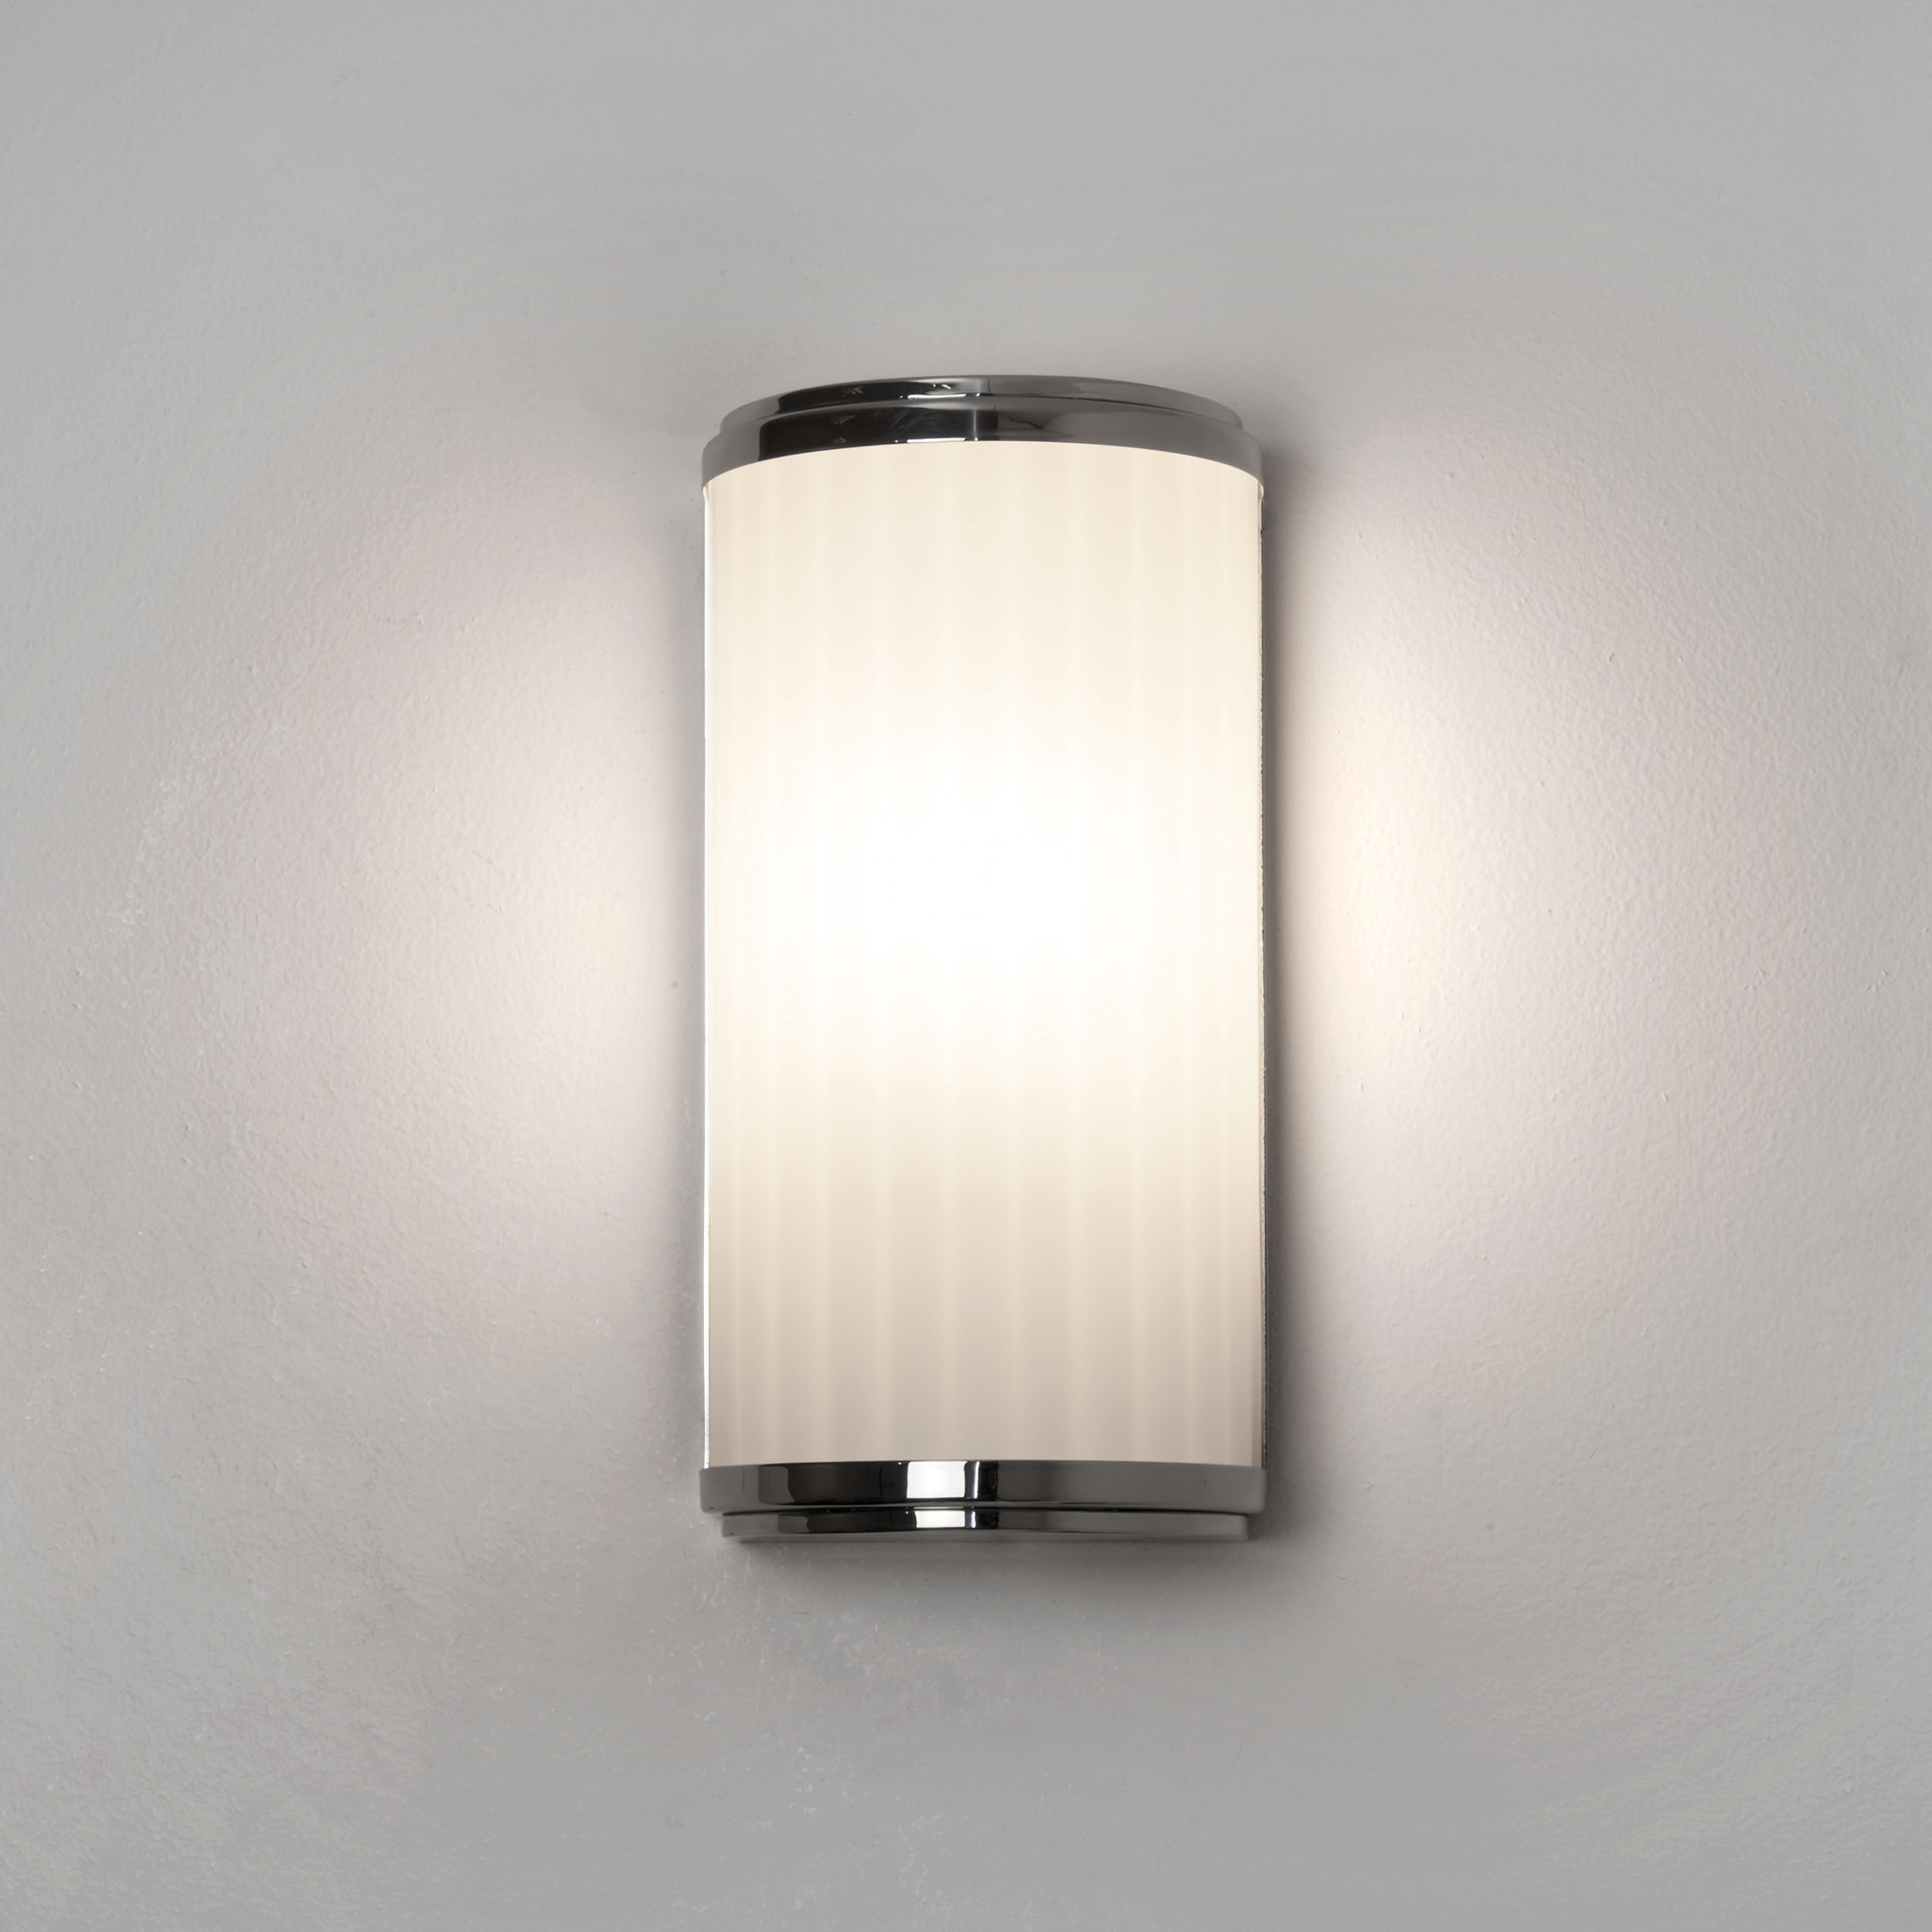 ASTRO MONZA 250 3.2W LED bathroom IP44 wall mirror light polished chrome glass Thumbnail 1